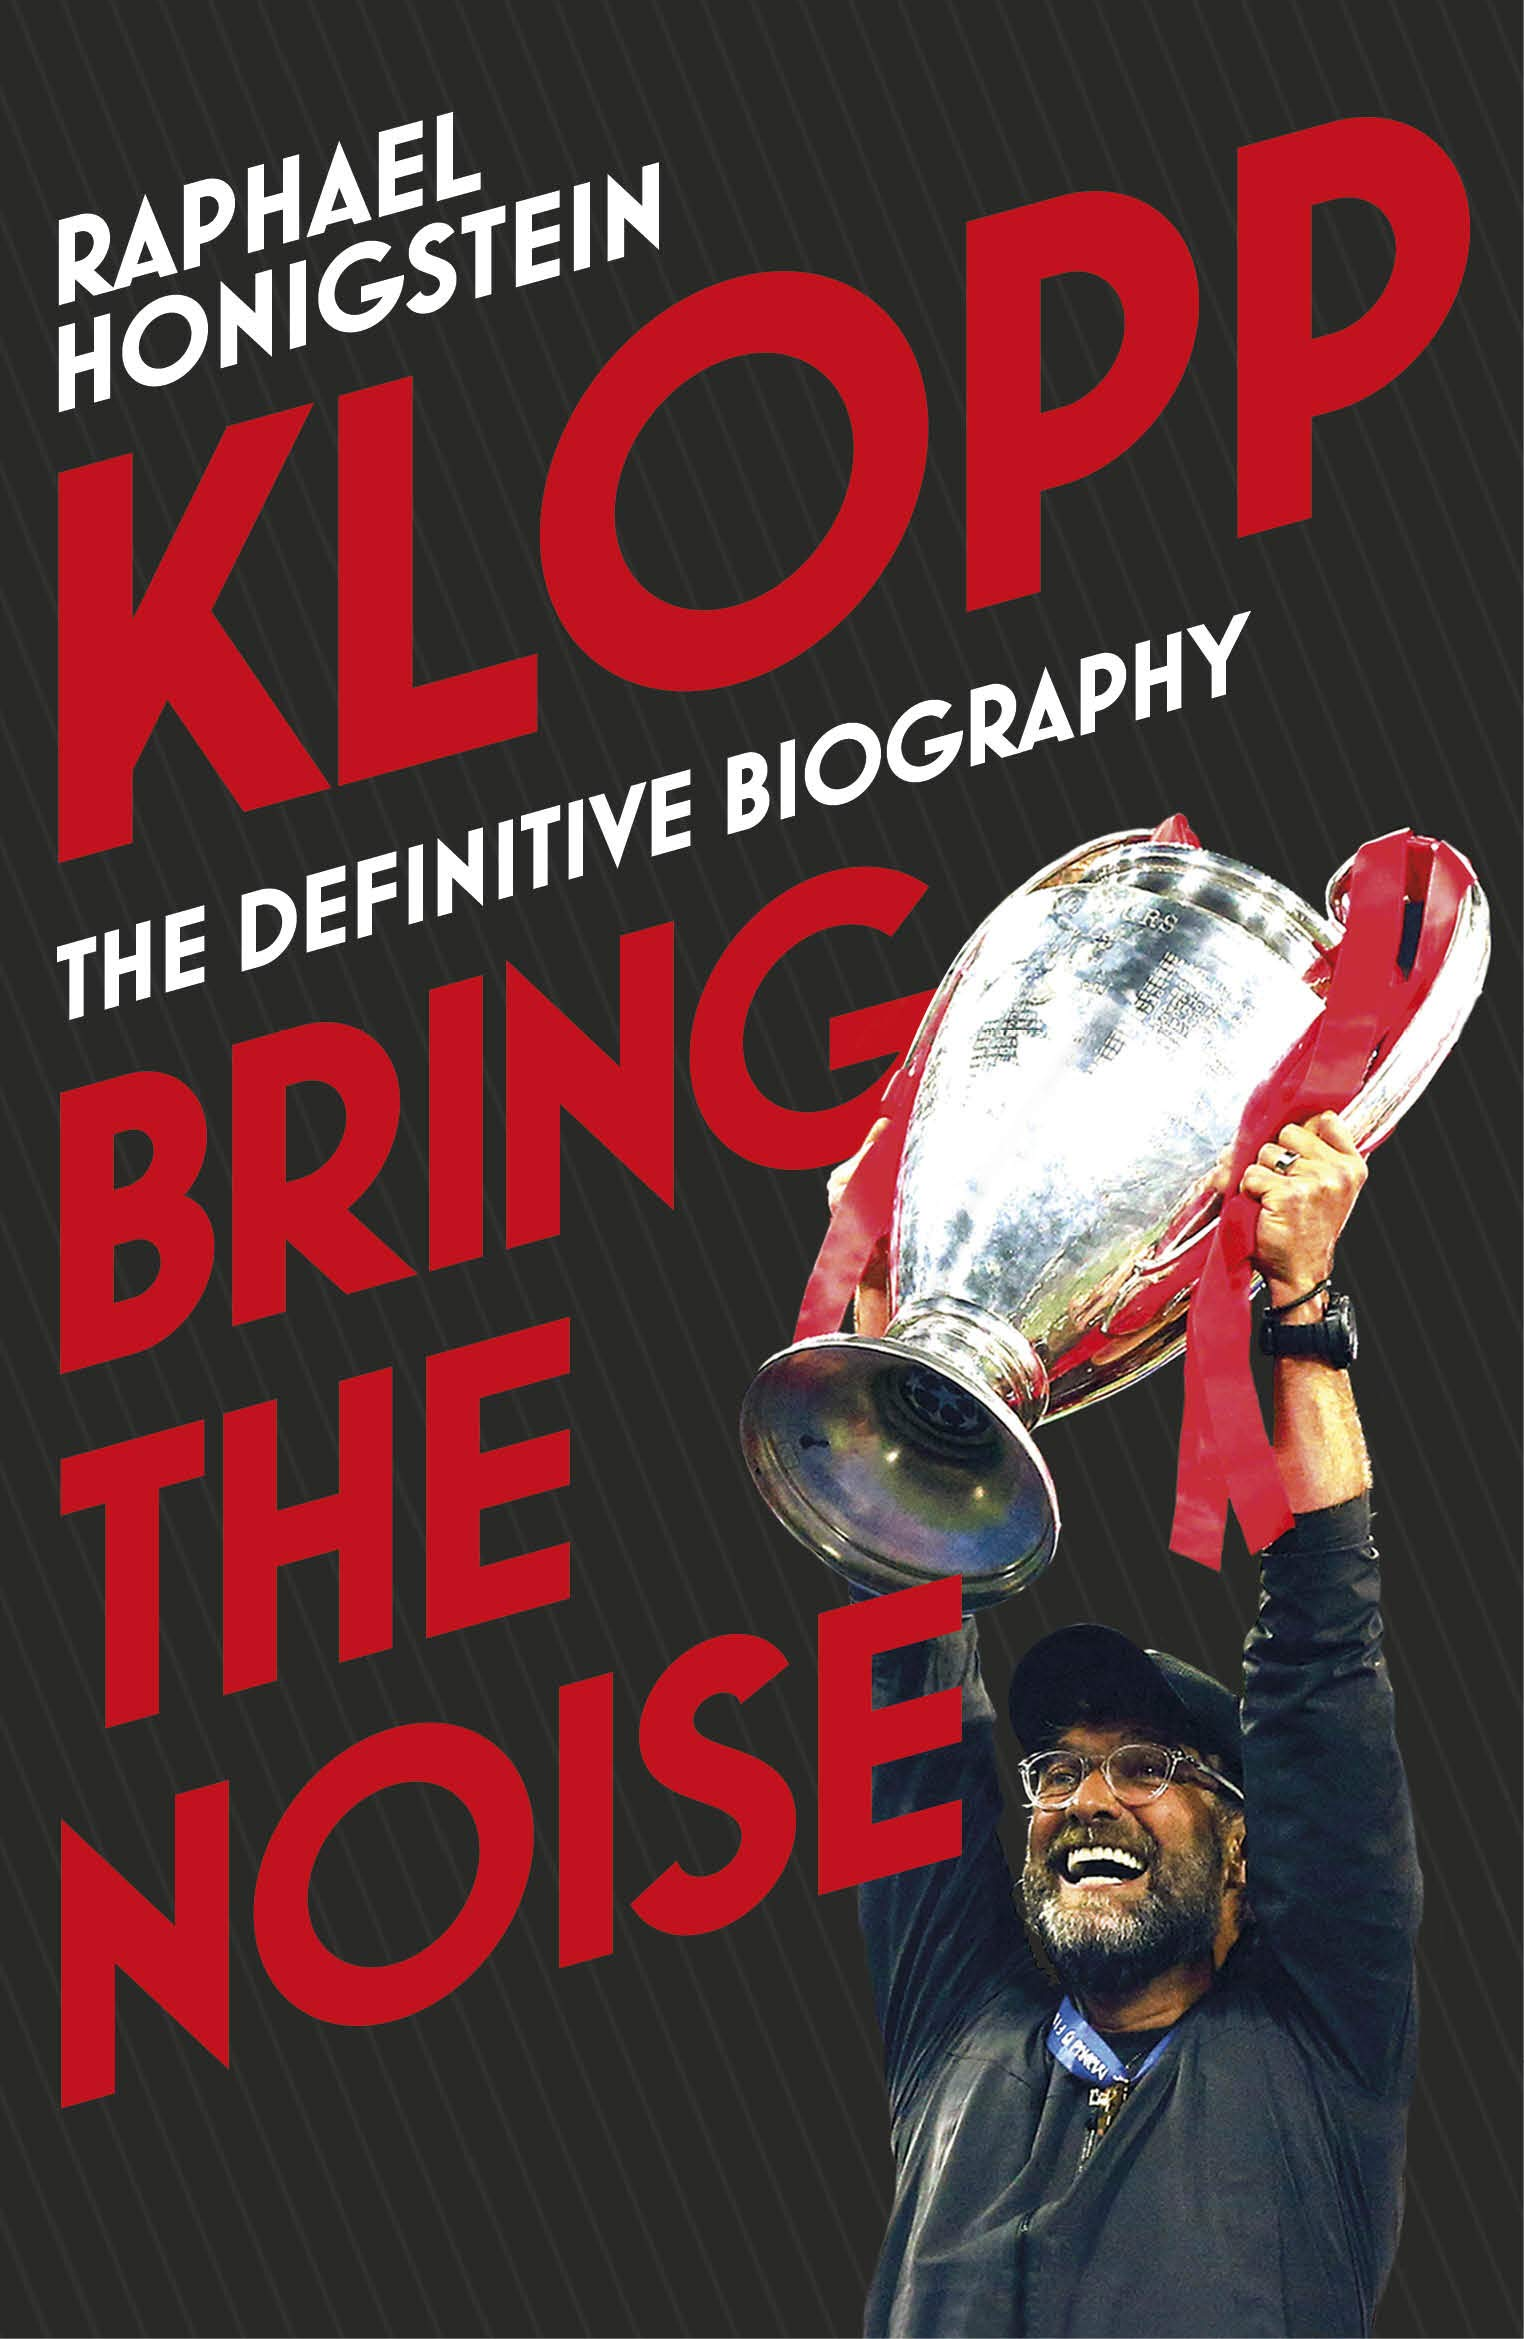 Image OfKlopp: Bring The Noise (English Edition)